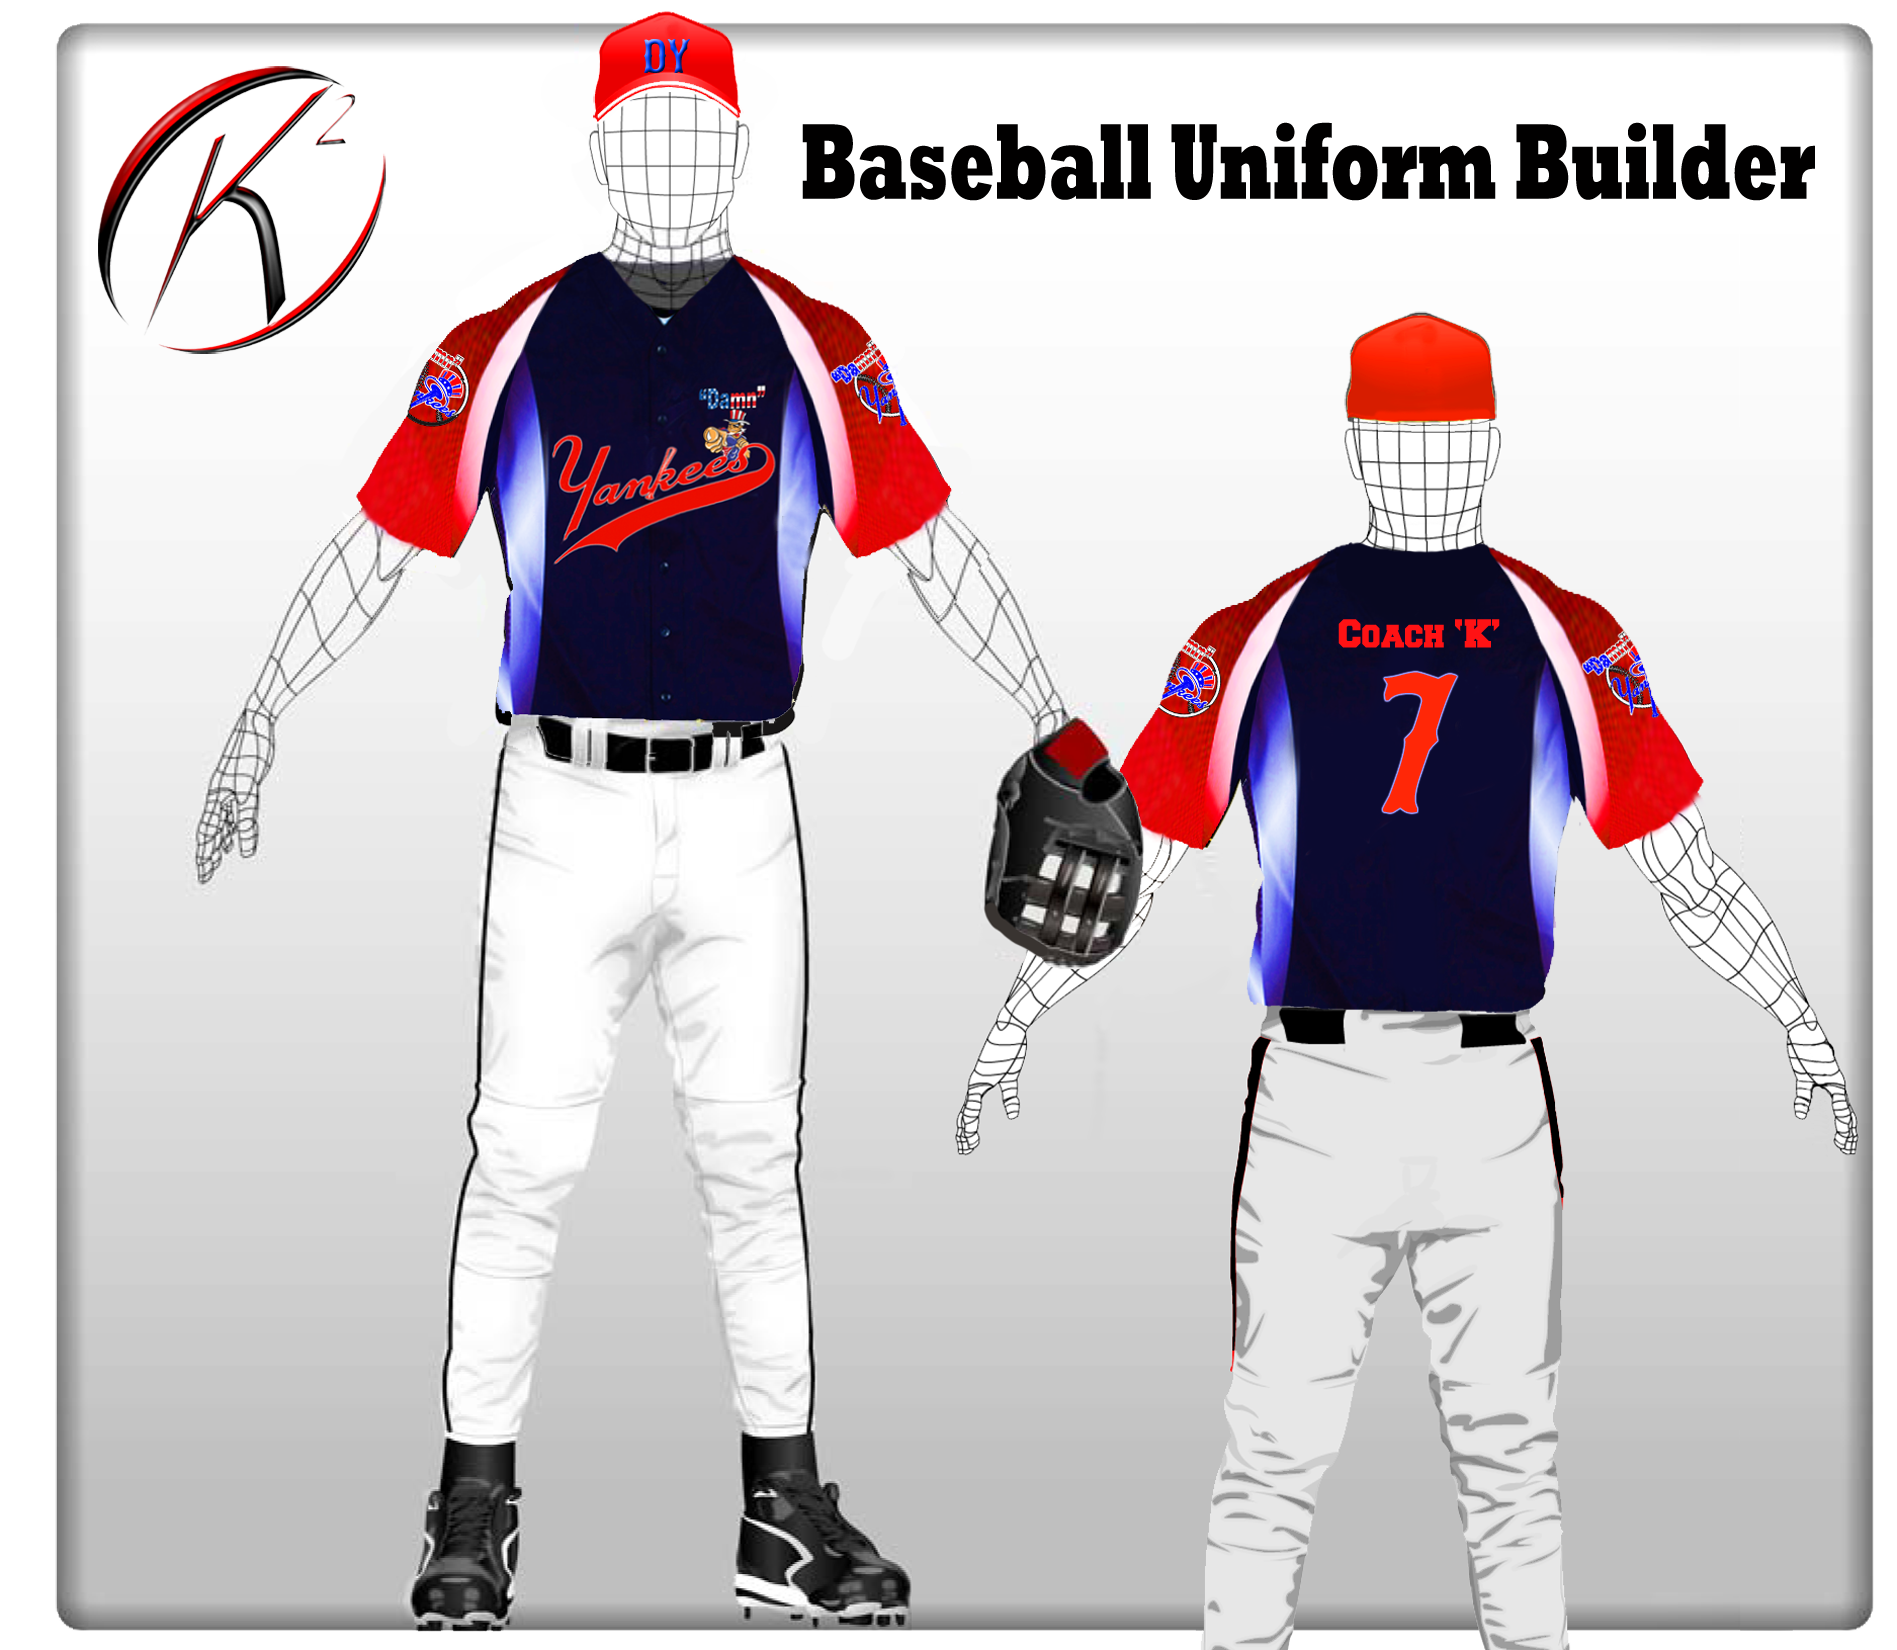 K2 - Baseball Uniform Builder